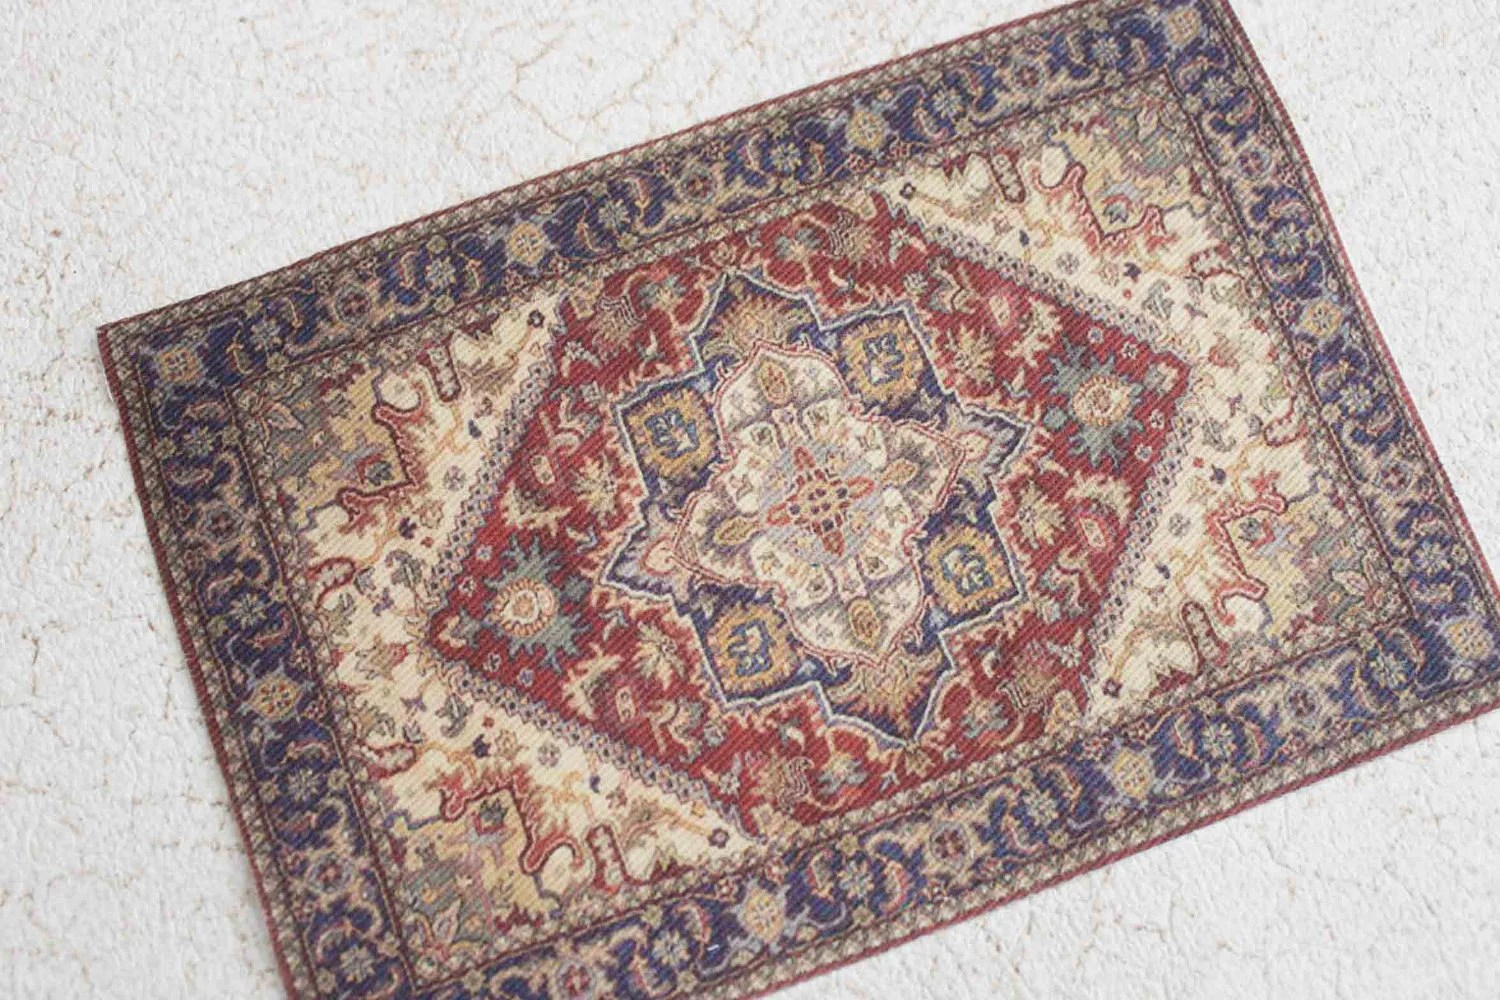 Miniature Dollhouse Rug Victorian or Edwardian Era by